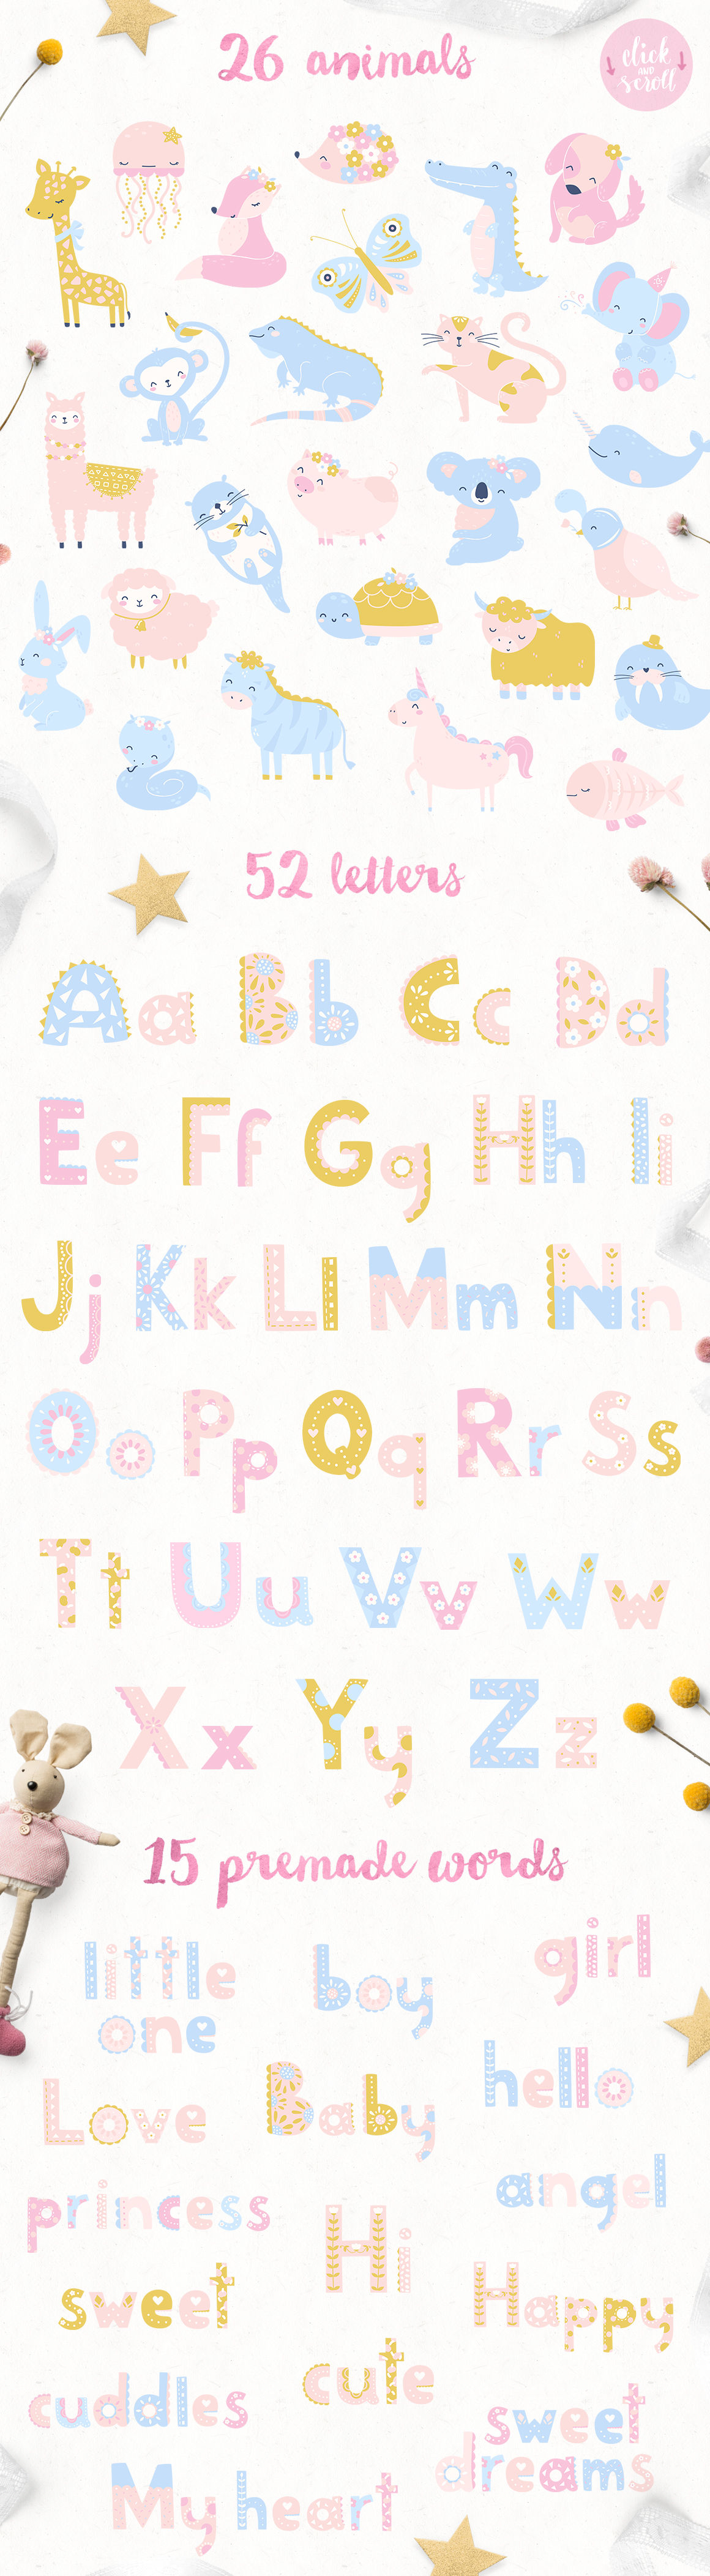 Animal Alphabet Cute Baby Patterns By Inna Moreva